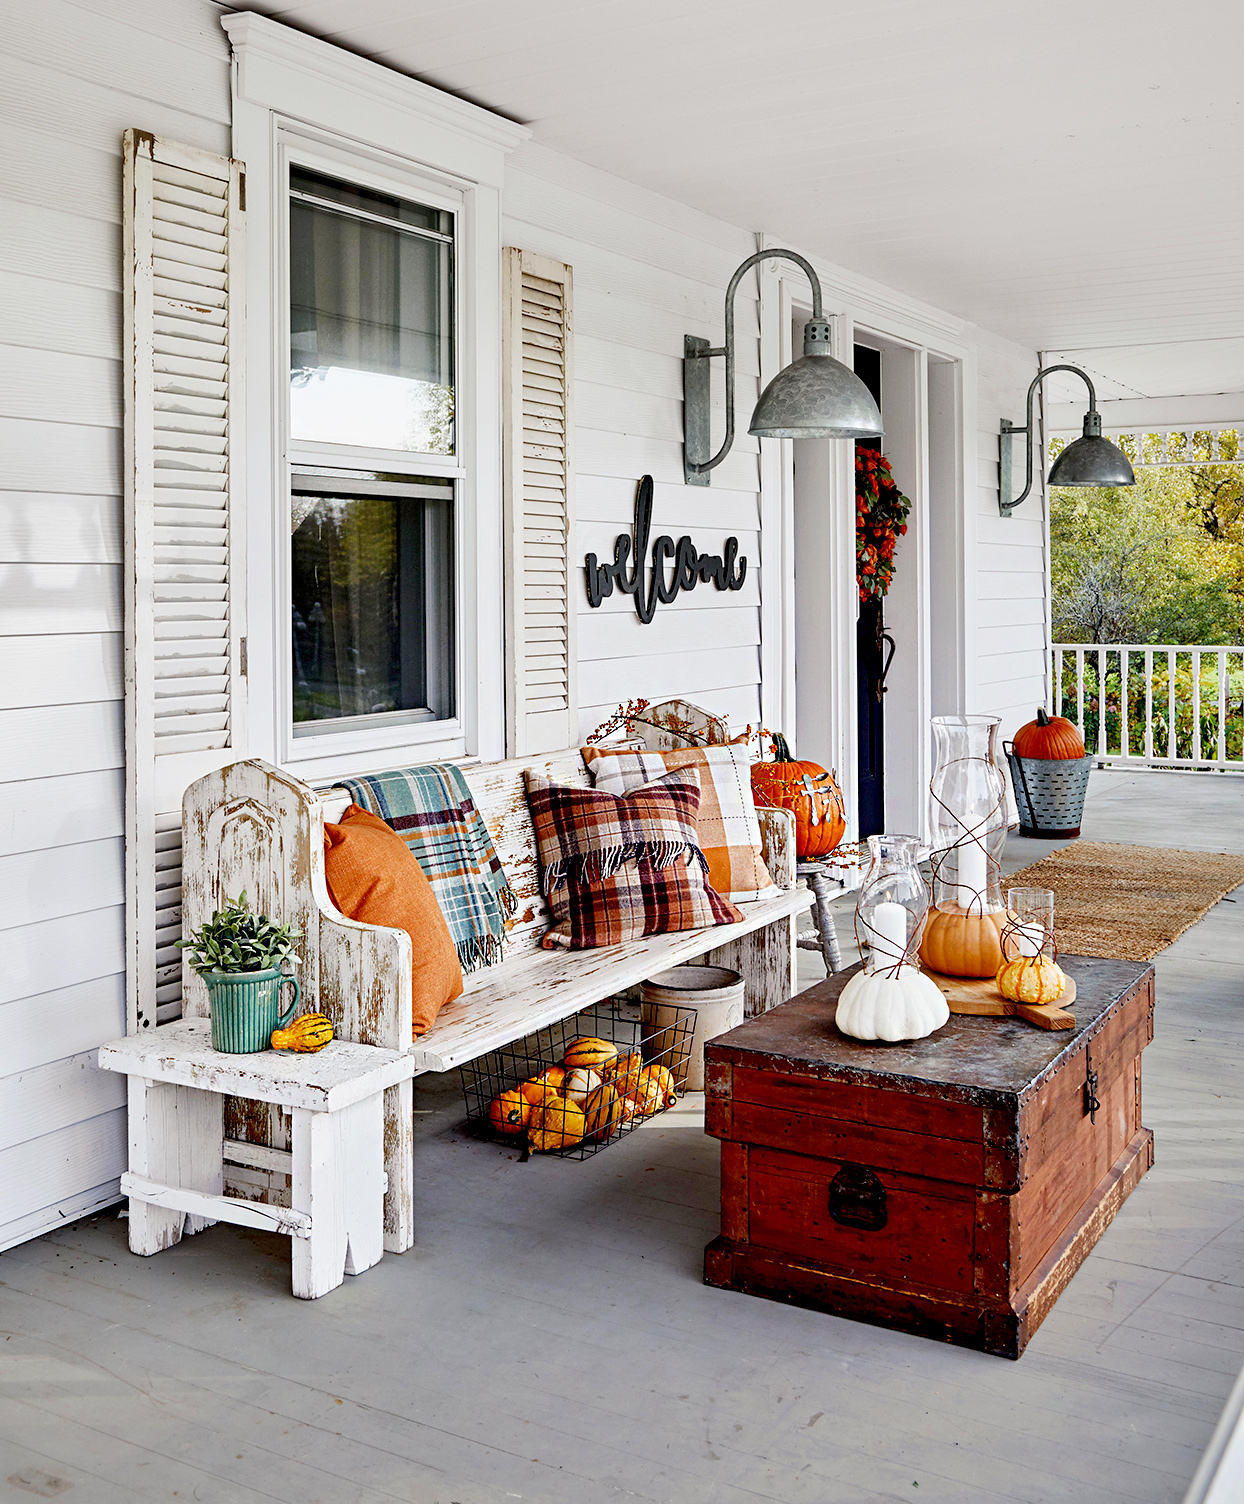 Front porch with rustic seat, chest table